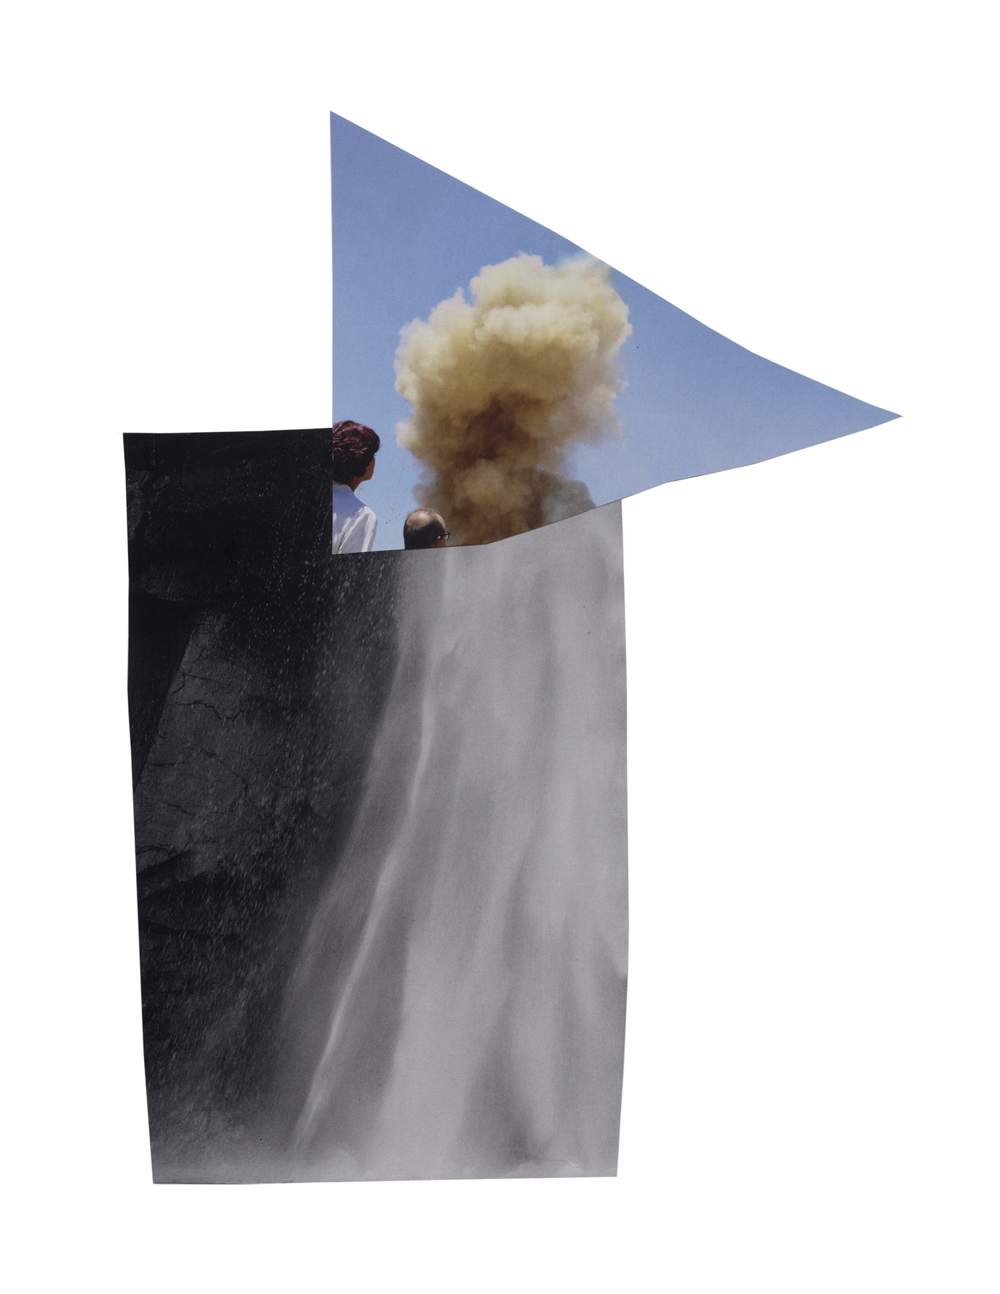 Watching an explosion where there should have been a waterfall